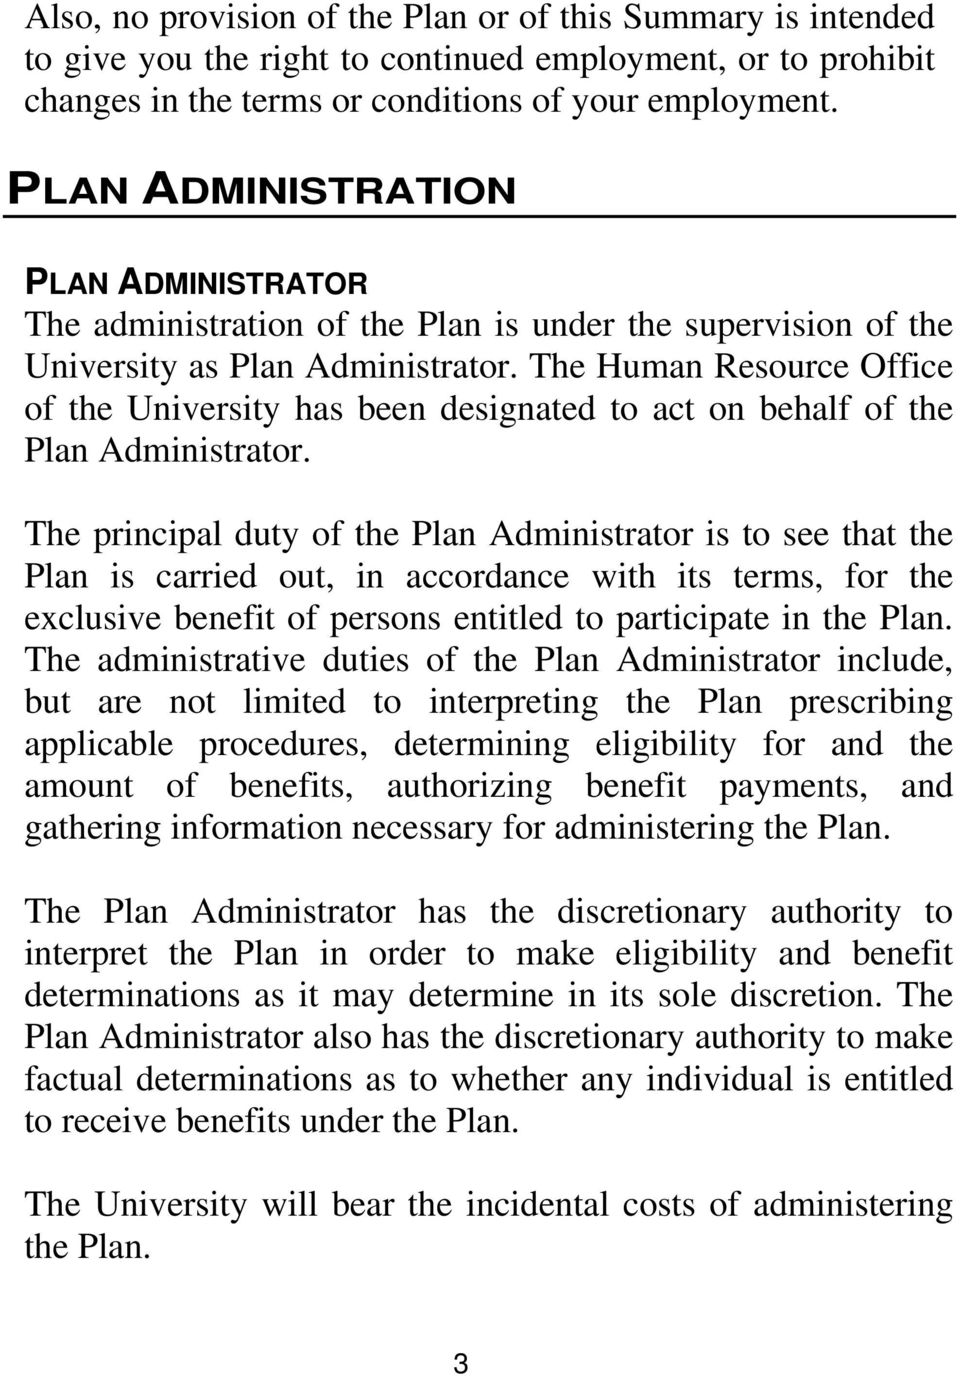 The Human Resource Office of the University has been designated to act on behalf of the Plan Administrator.